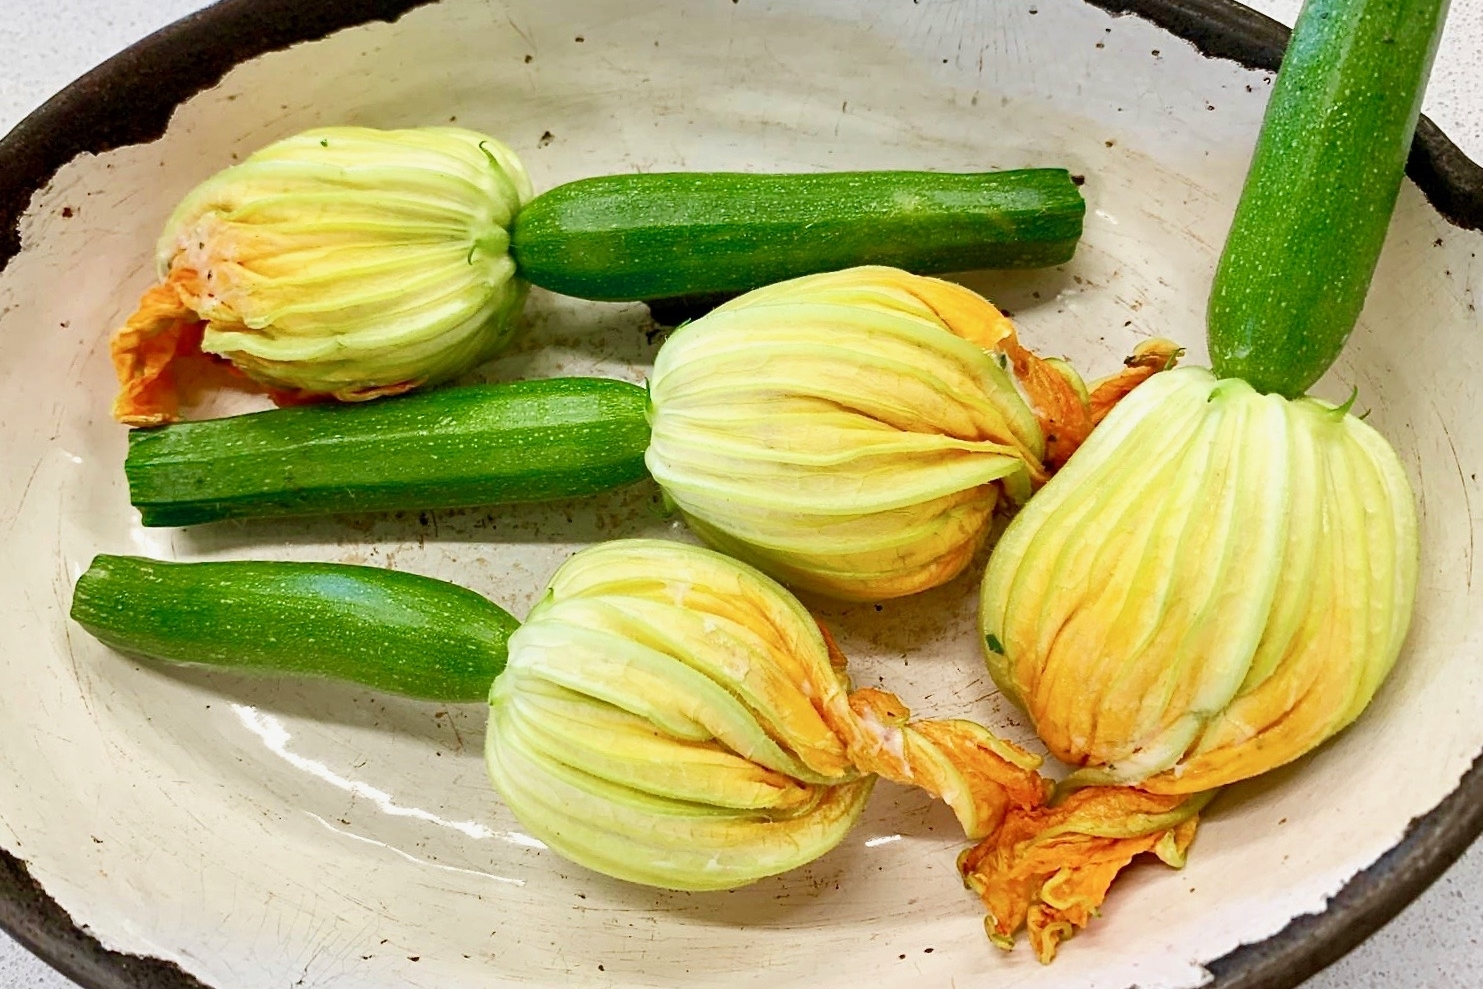 Courgette flower stuffed with chicken mousse and rabbit liver